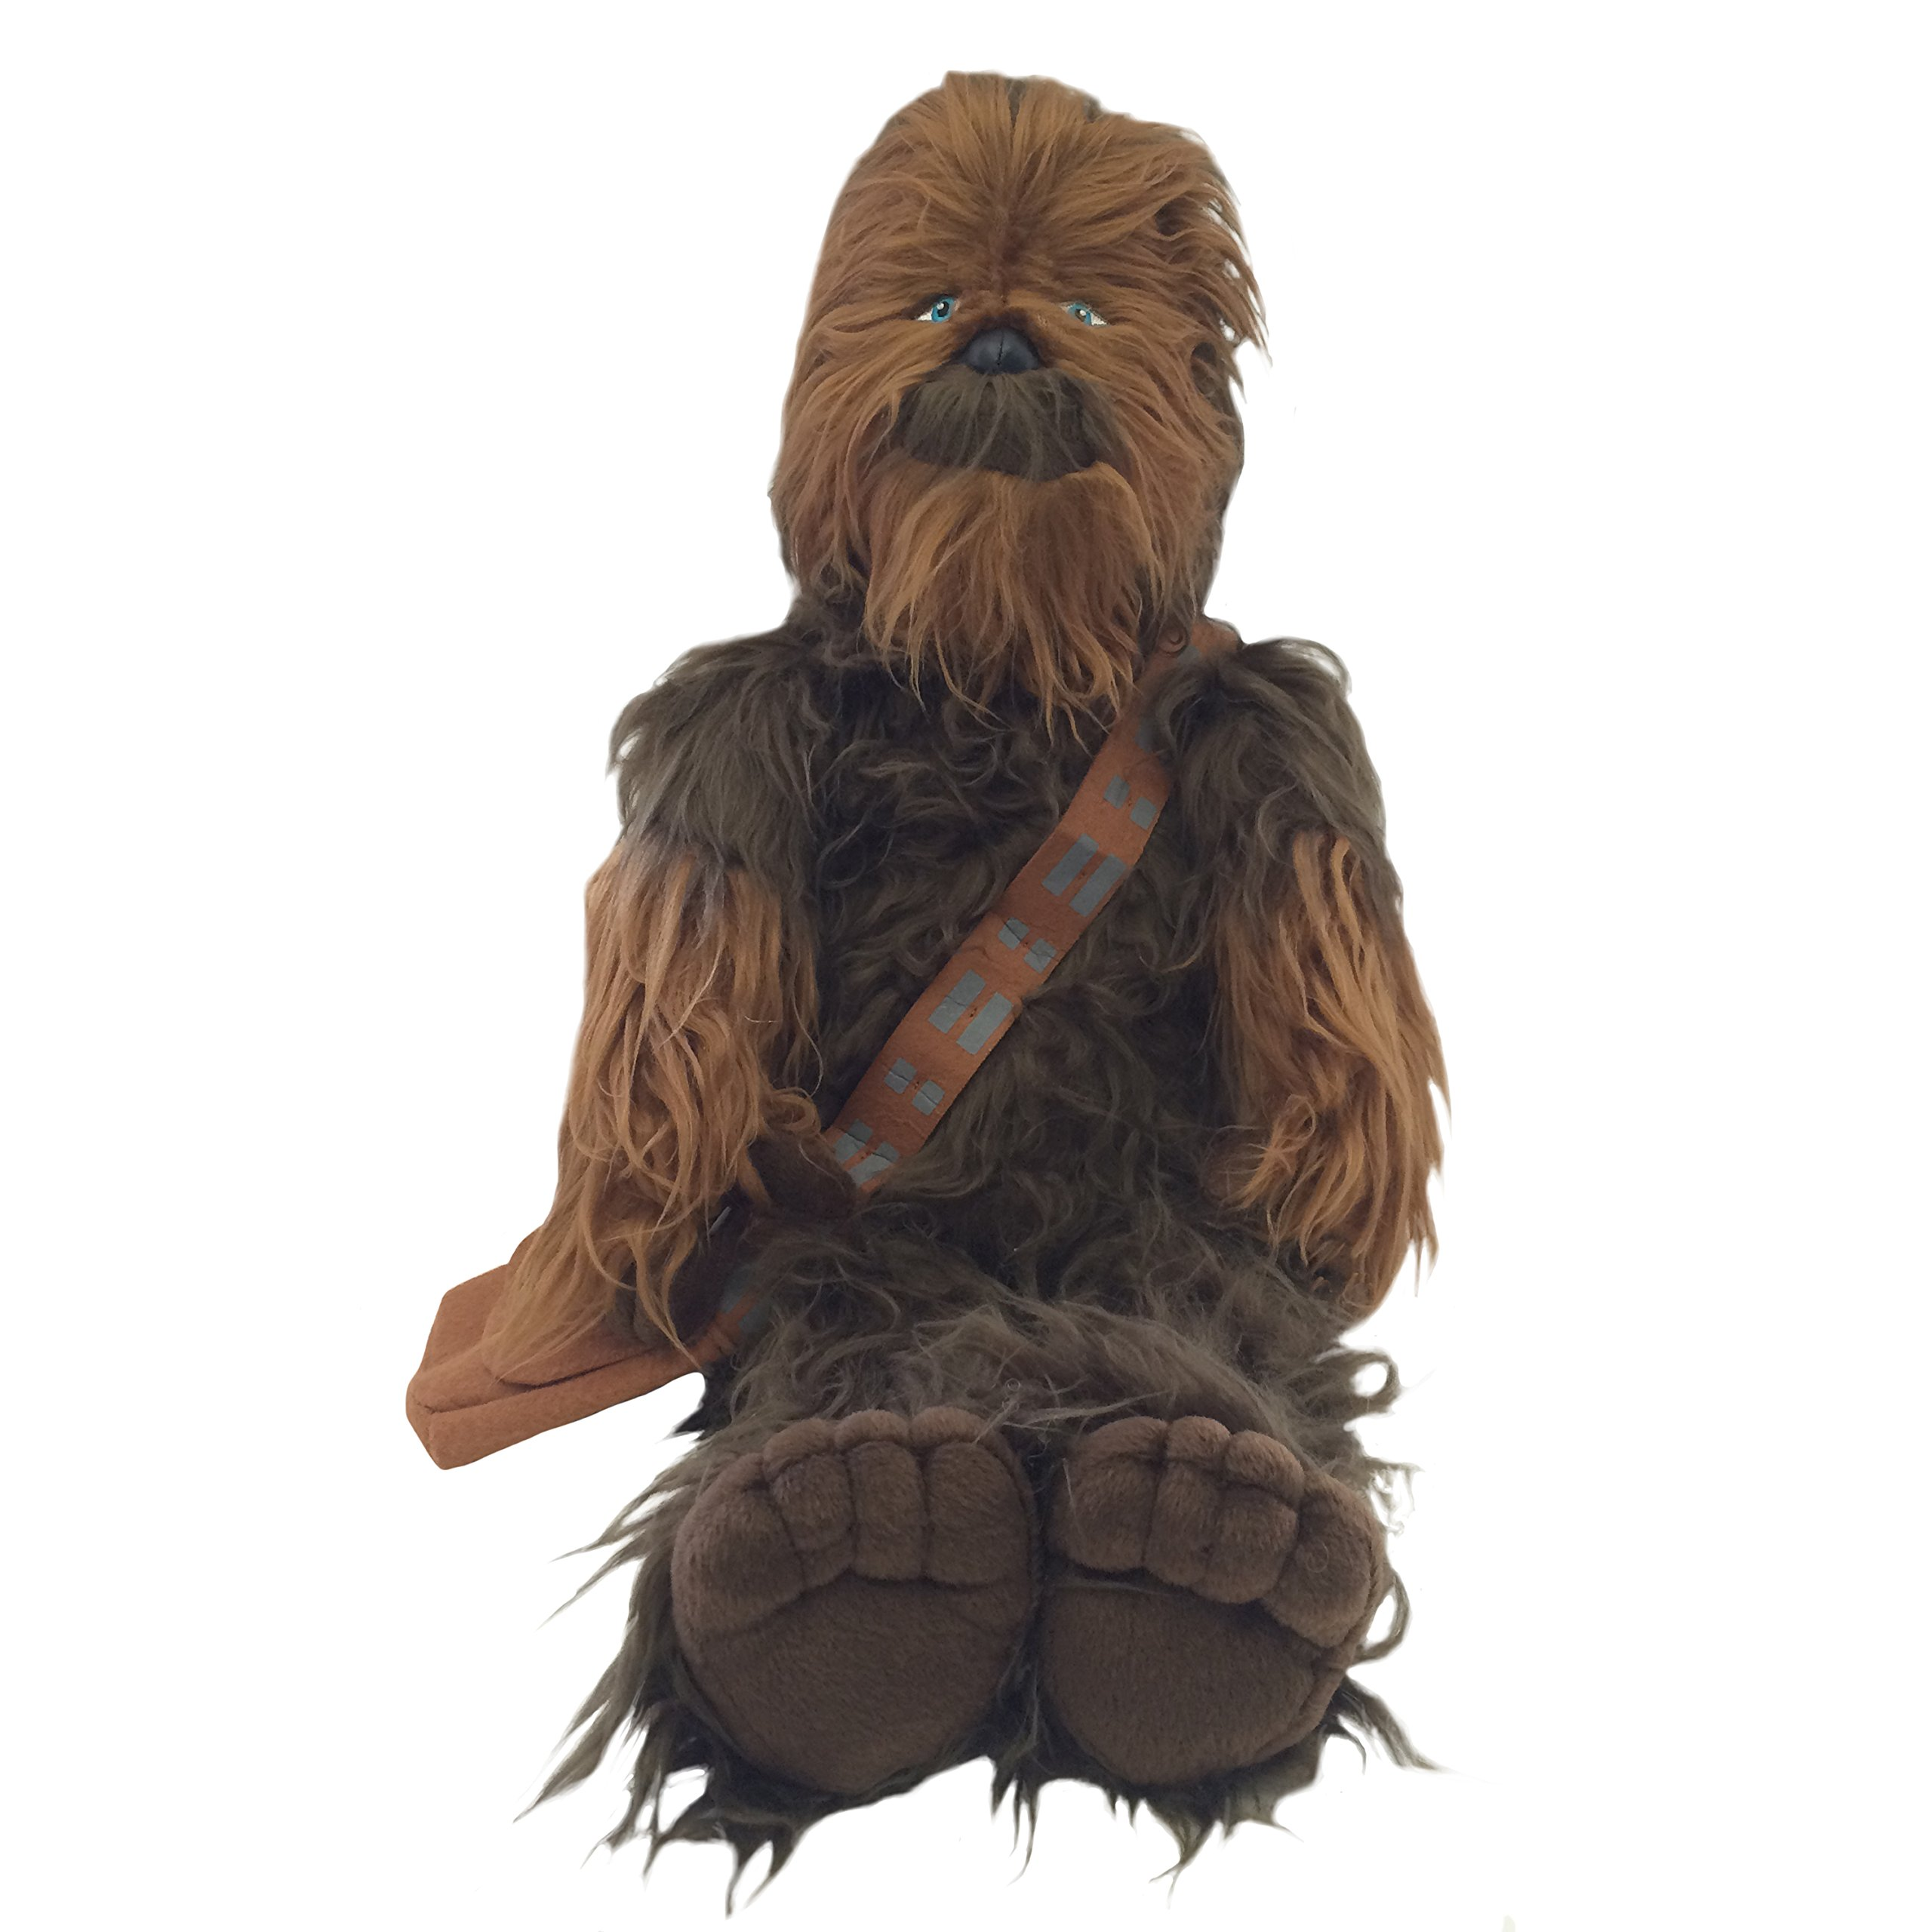 Star Wars  Plush Stuffed Chewbacca Pillow Buddy - Kids Super Soft Polyester Microfiber, 24 inch (Official Product) by Star Wars